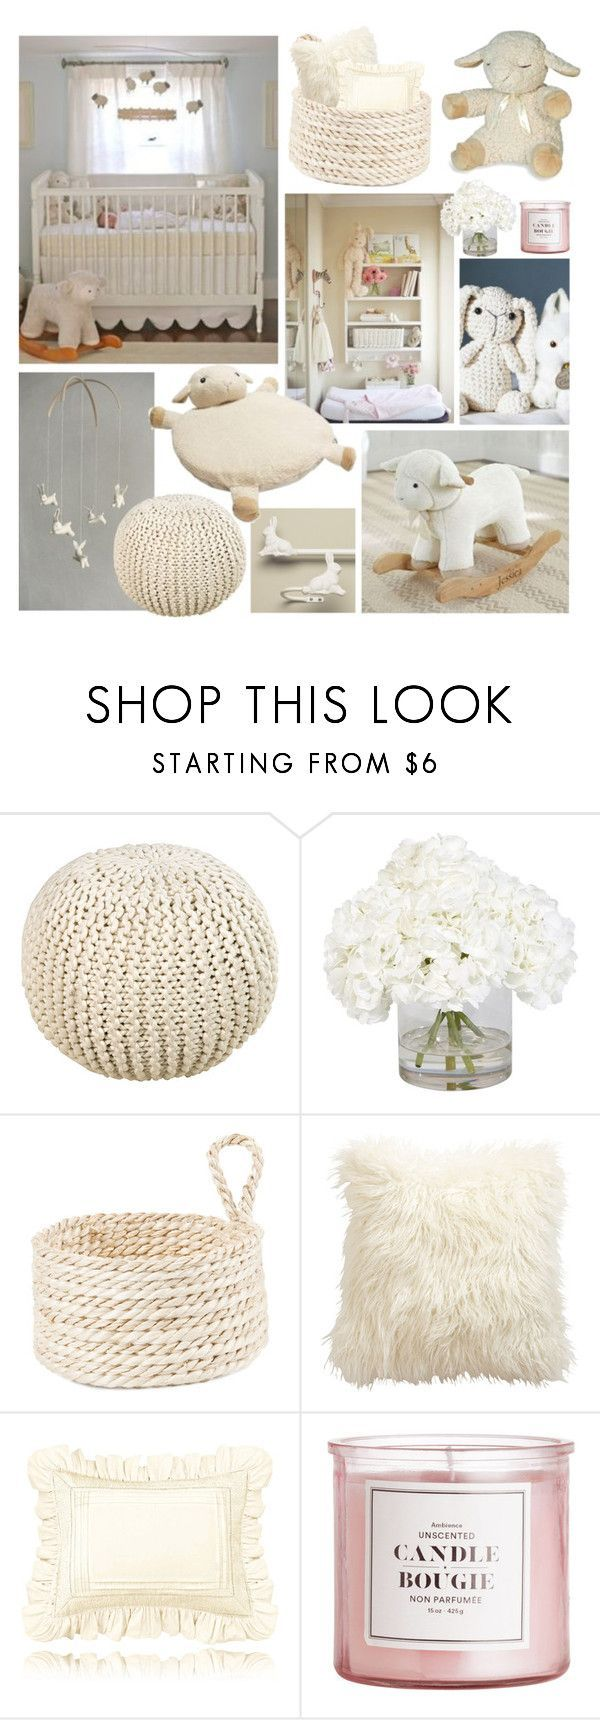 """Bunnies & Sheep Nursery"" by hellobrit ❤ liked on Polyvore featuring interior, interiors, interior design, home, home decor, interior decorating, Surya, Ethan Allen, Zara Home and Thos. Baker trendy family must haves for the entire family ready to ship! Free shipping over $50. Top brands and stylish products"